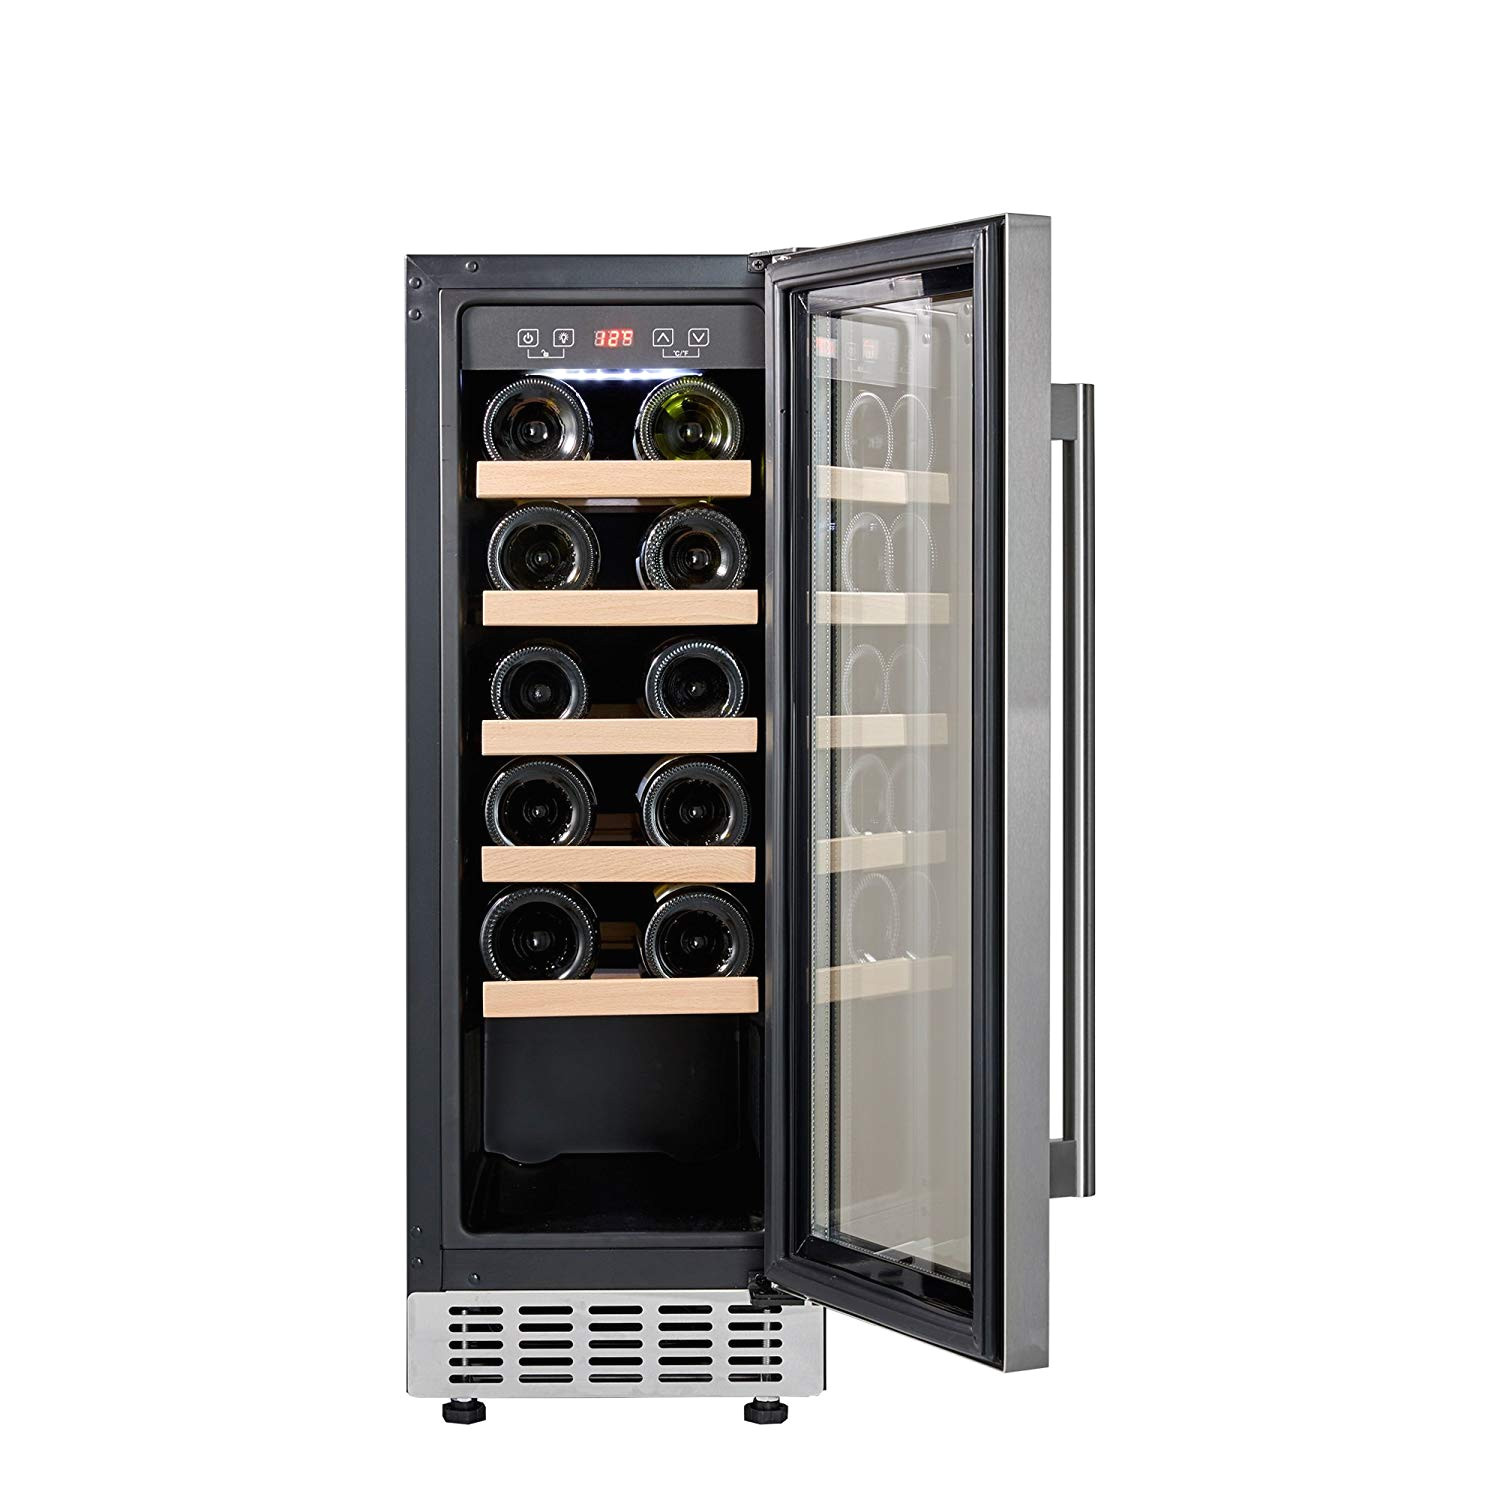 cookology cwc300ss 30cm wine cooler in stainless steel 20 bottle capacity freestanding undercounter fridge amazon co uk large appliances